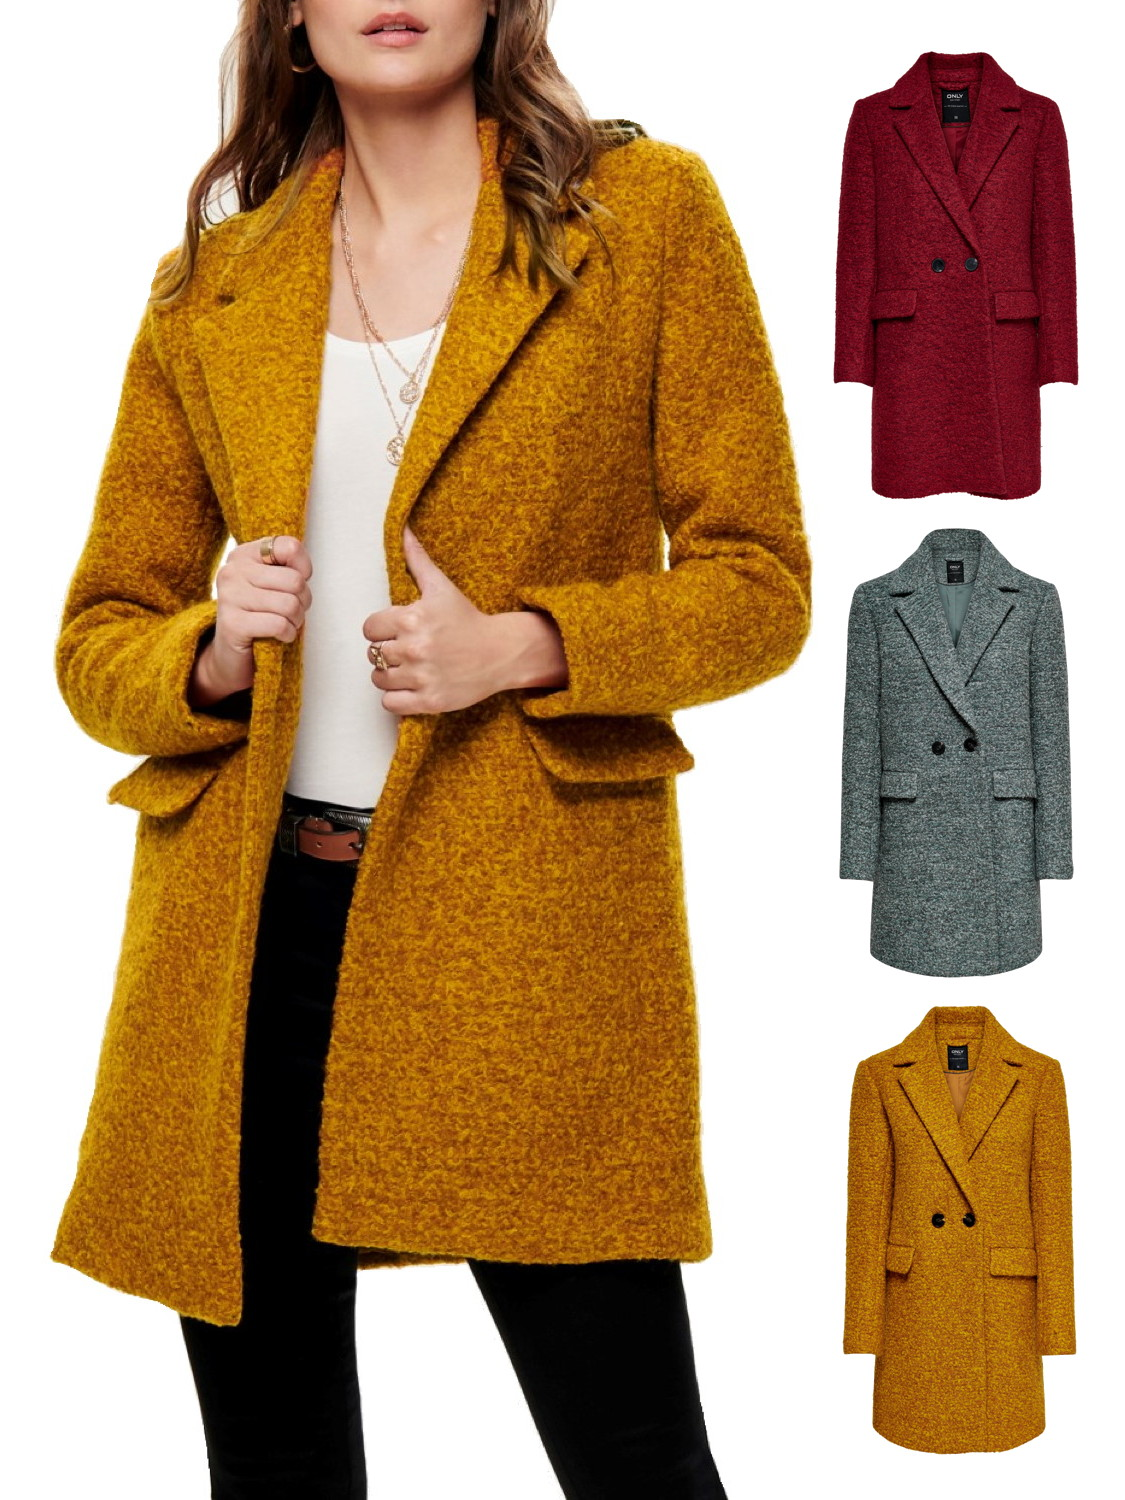 Only Damen Jacke Mantel onlSophia Boucle Wool Kurzmantel Woll 34 36 38 40 42